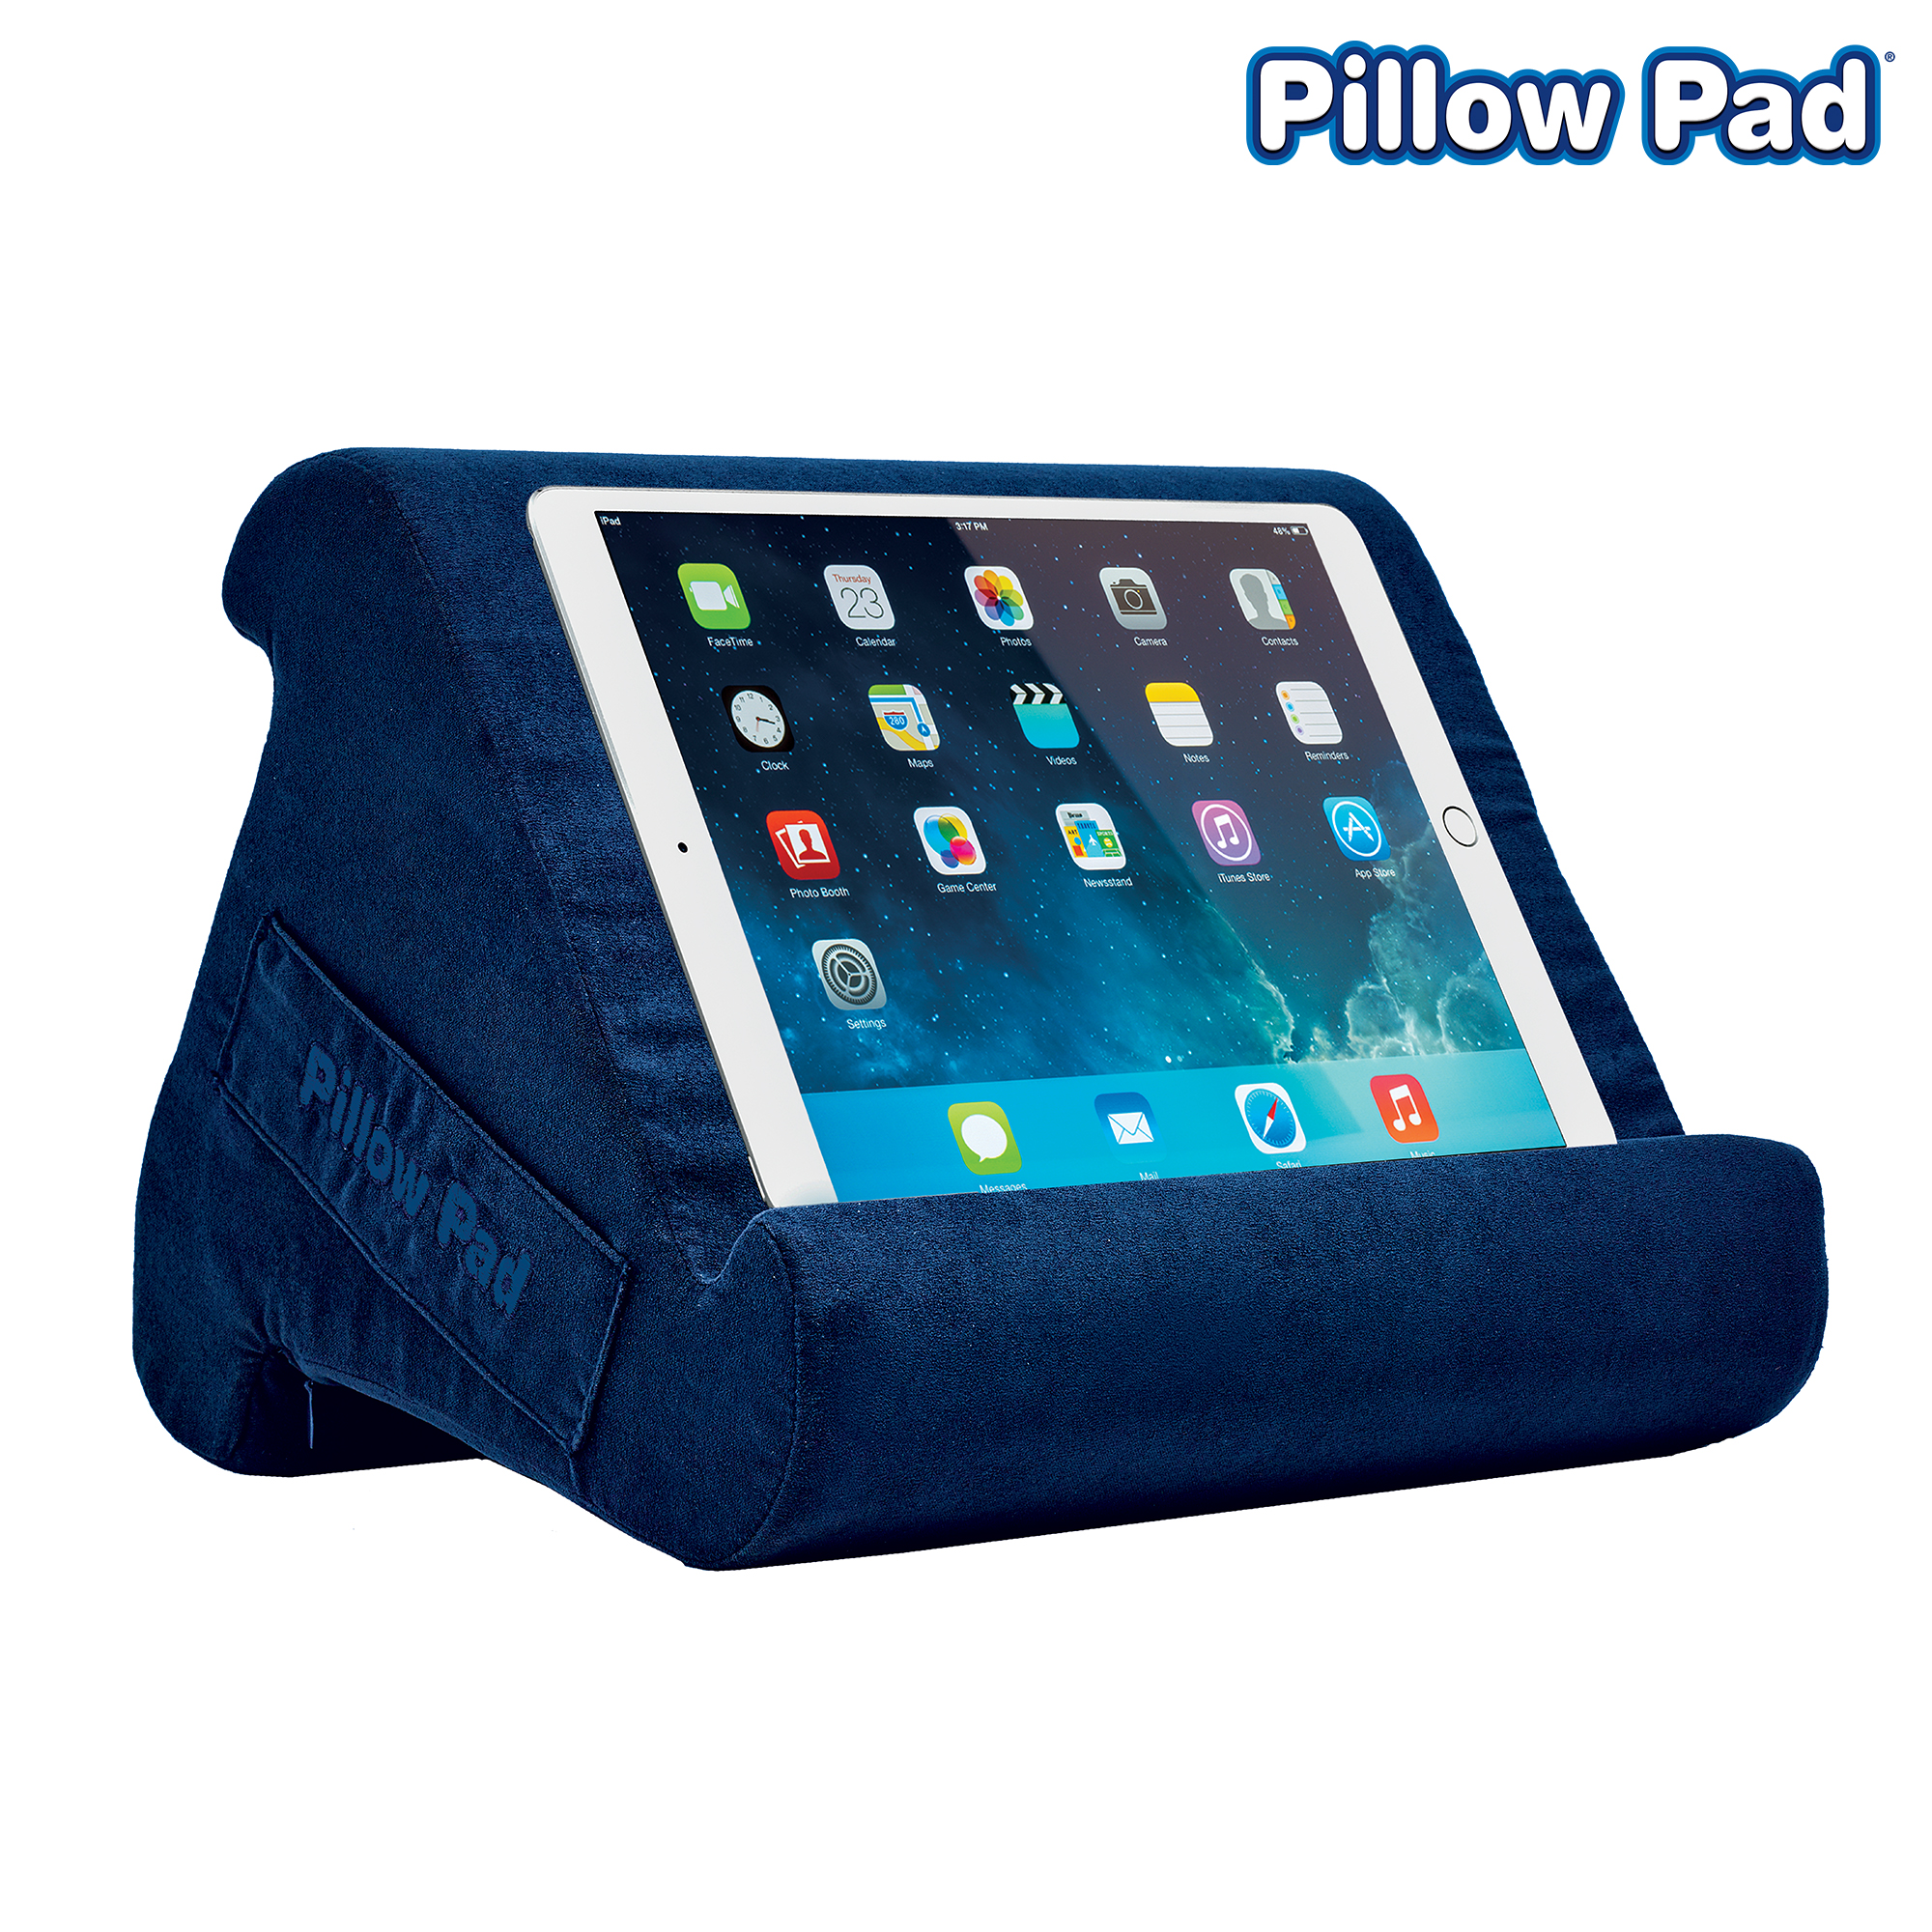 pillow pad multi angle cushioned tablet and ipad stand space gray as seen on tv